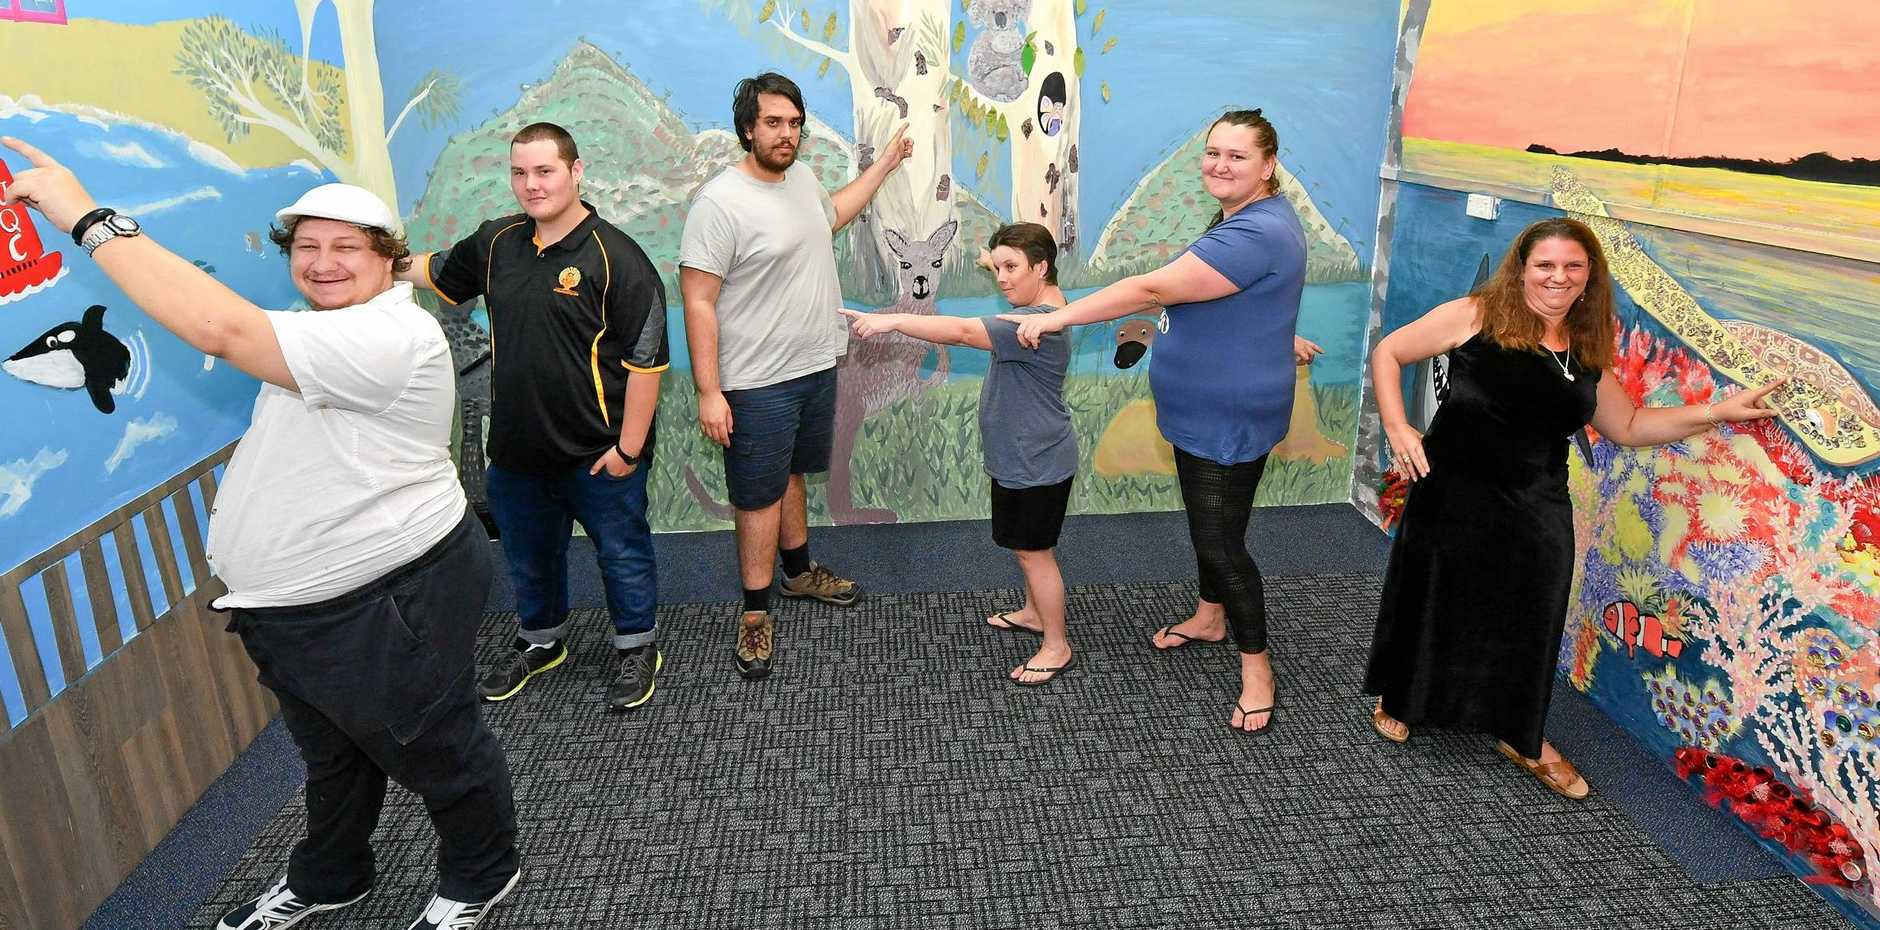 IN THE PICTURE: David Collins, Tristan Vickery, Jakib Holmes, Kendall MacBeath, Petica Langford and Angie Goodrem with the mural wall at Unique Quality Care.